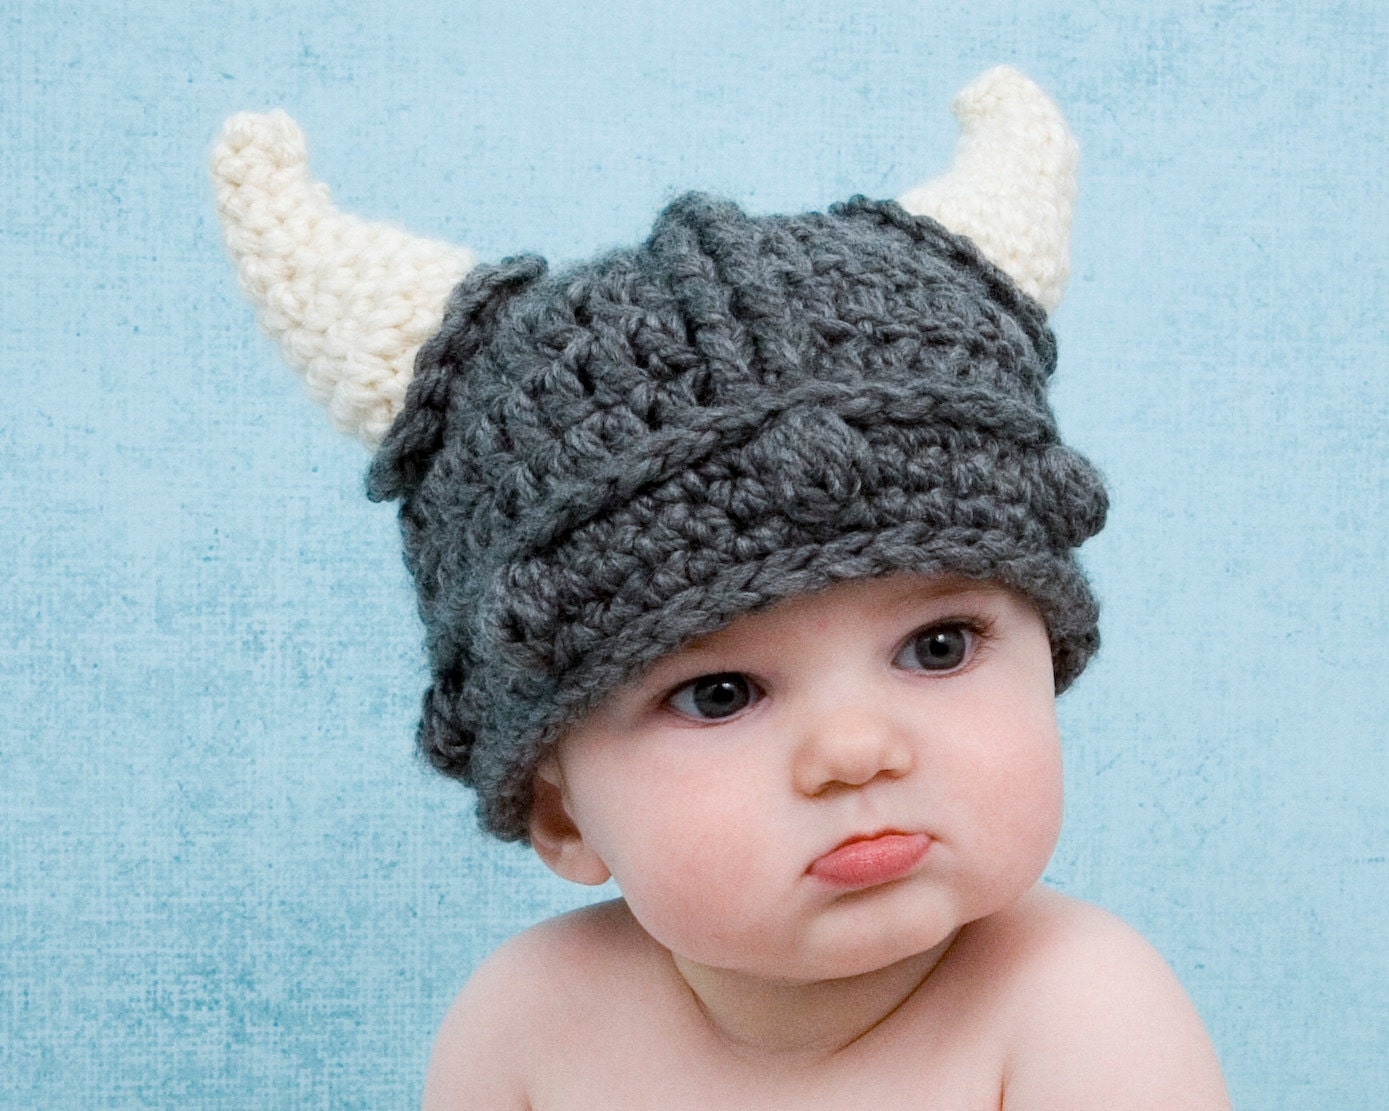 Viking hat crochet pattern baby adult child knight dwarf viking hat crochet pattern baby adult child knight dwarf lord rings hobbit stoic astrid dragon gimli viking costume boy girl bankloansurffo Images